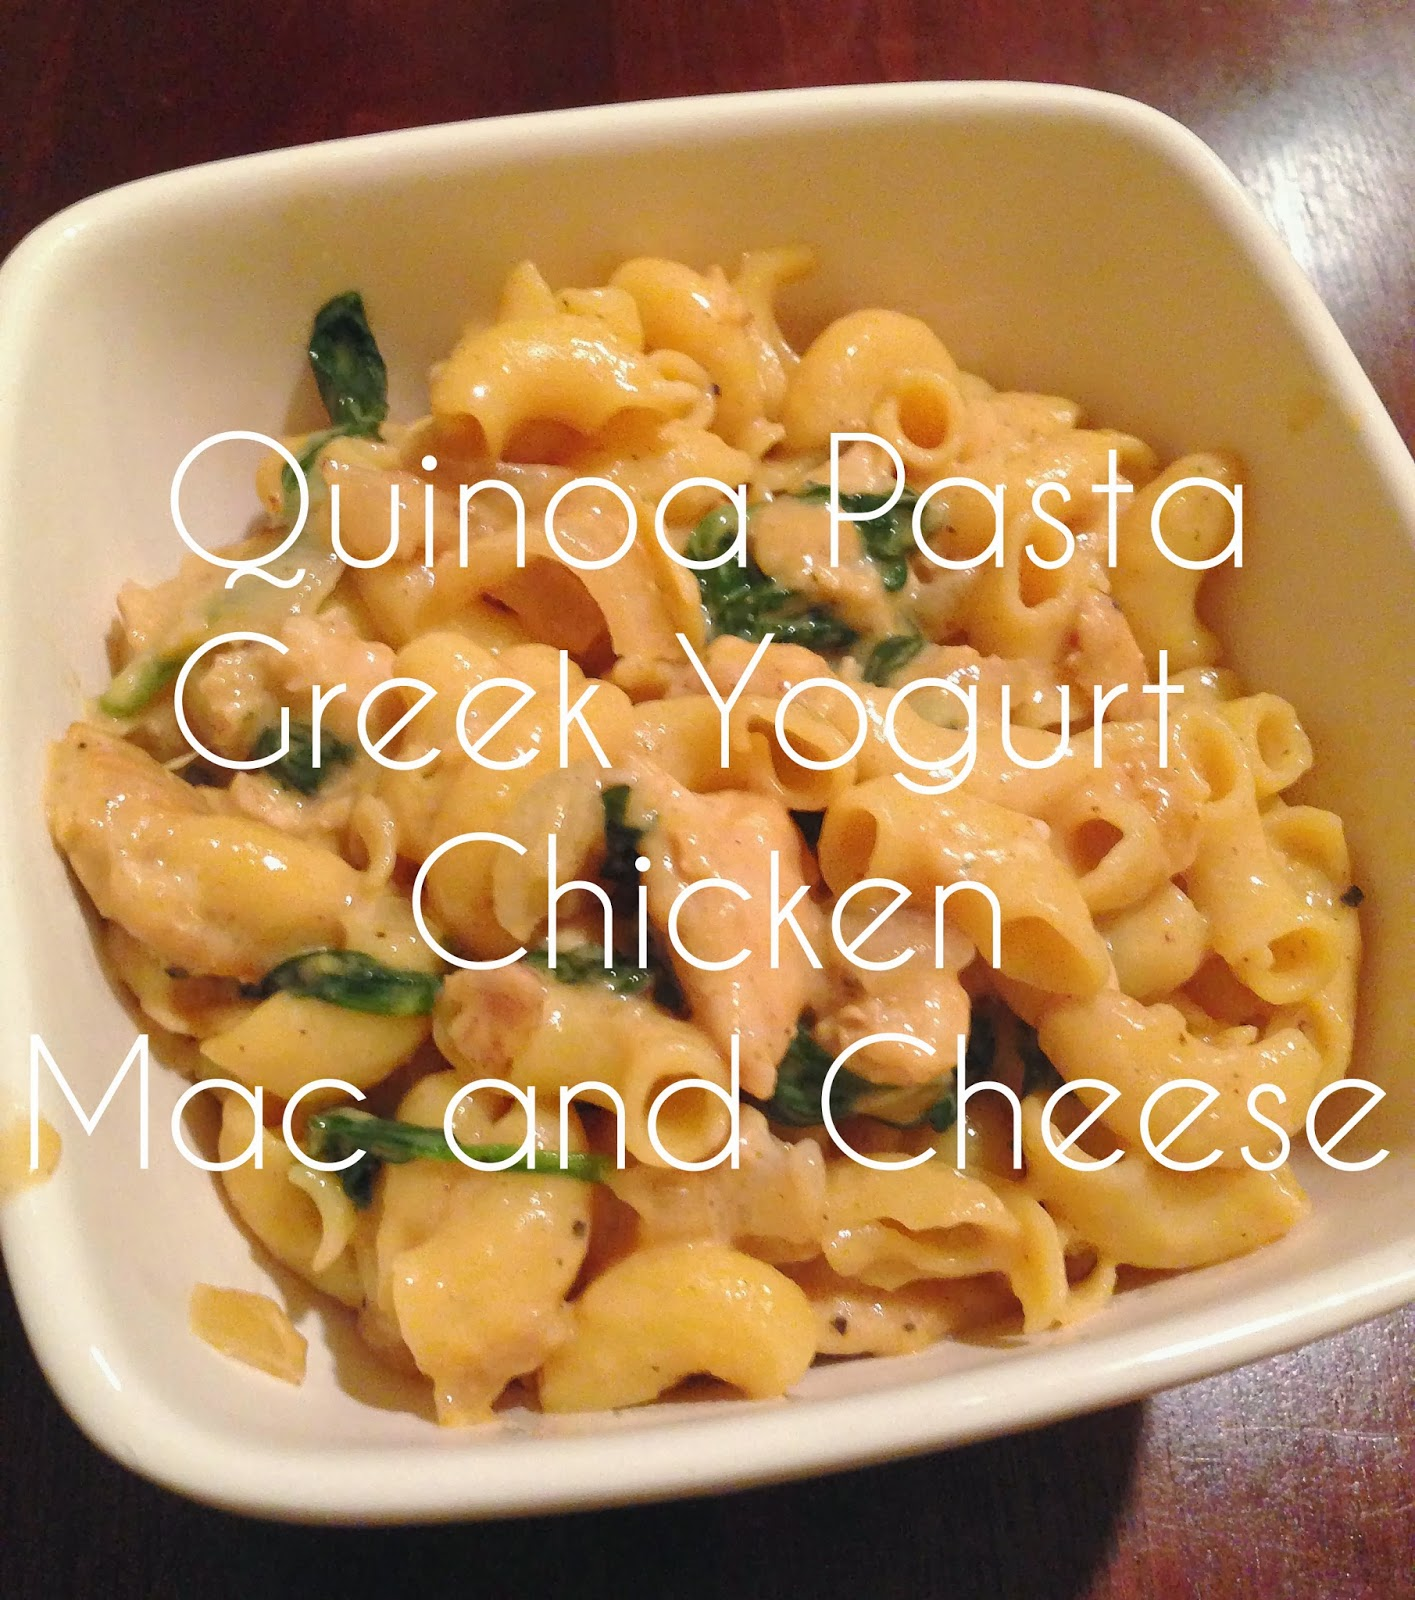 Quinoa Pasta Greek Yogurt Chicken Mac and Cheese